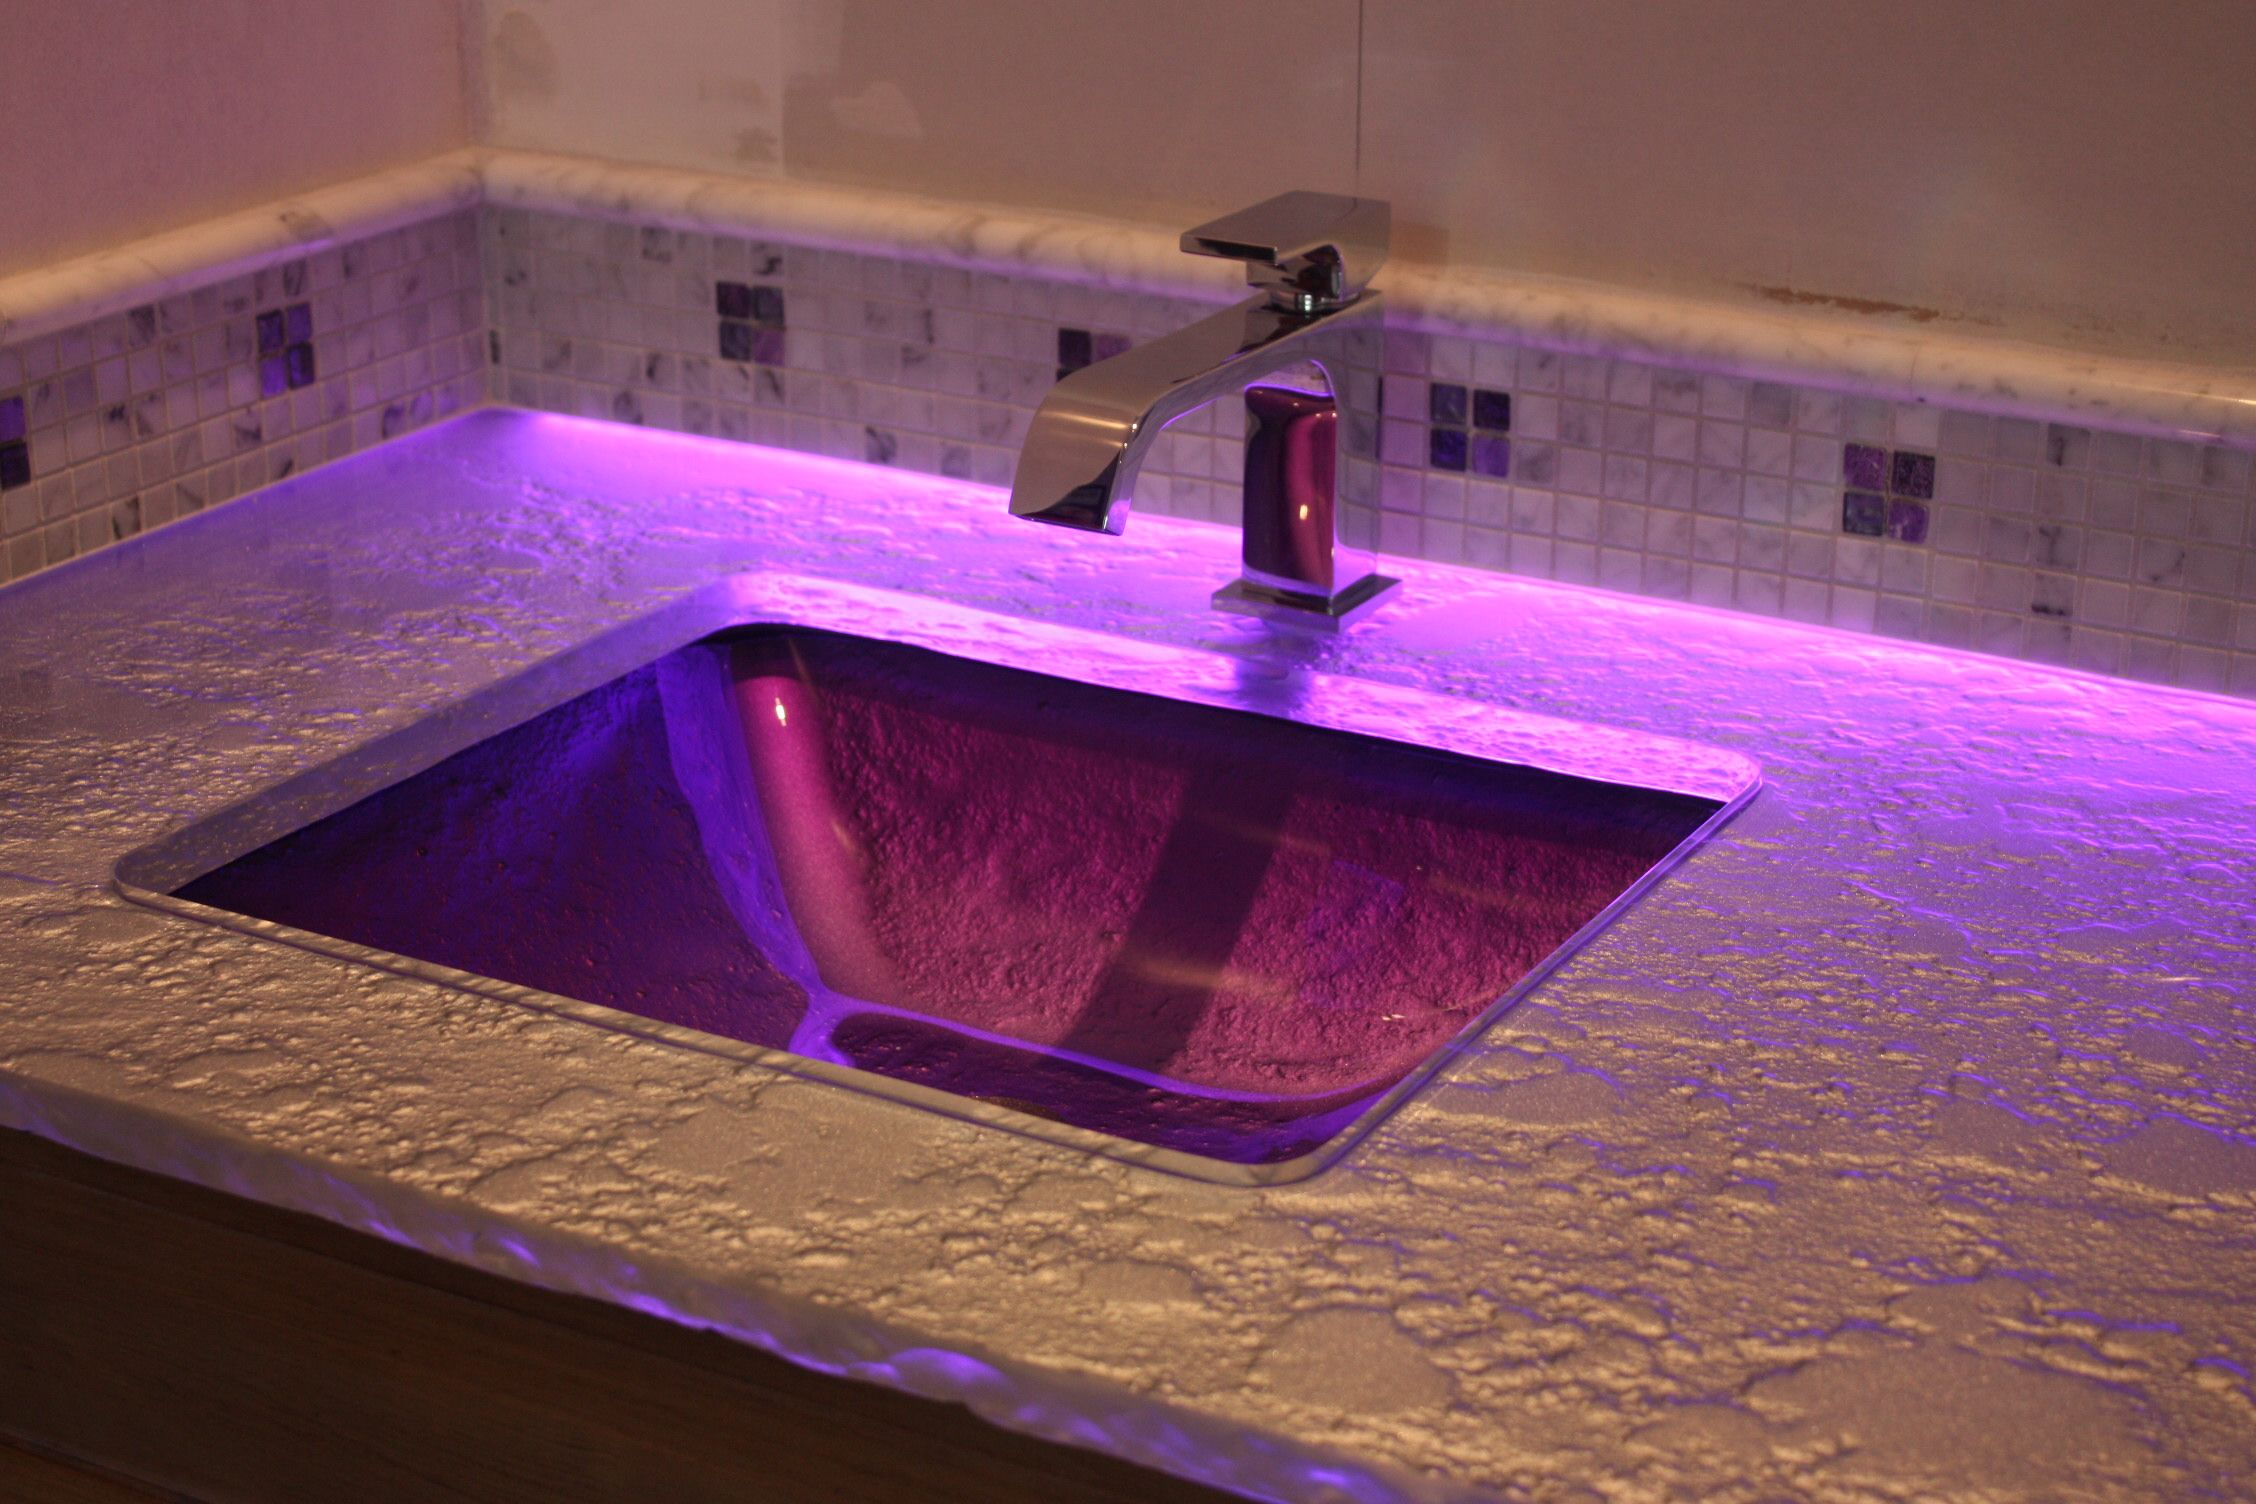 Pink and purple bathroom backroom accent led lighting of glass get quality led lights from the leading led light manufacturers at inspired led we offer energy saving dimmable transformers led kitchen lighting aloadofball Images